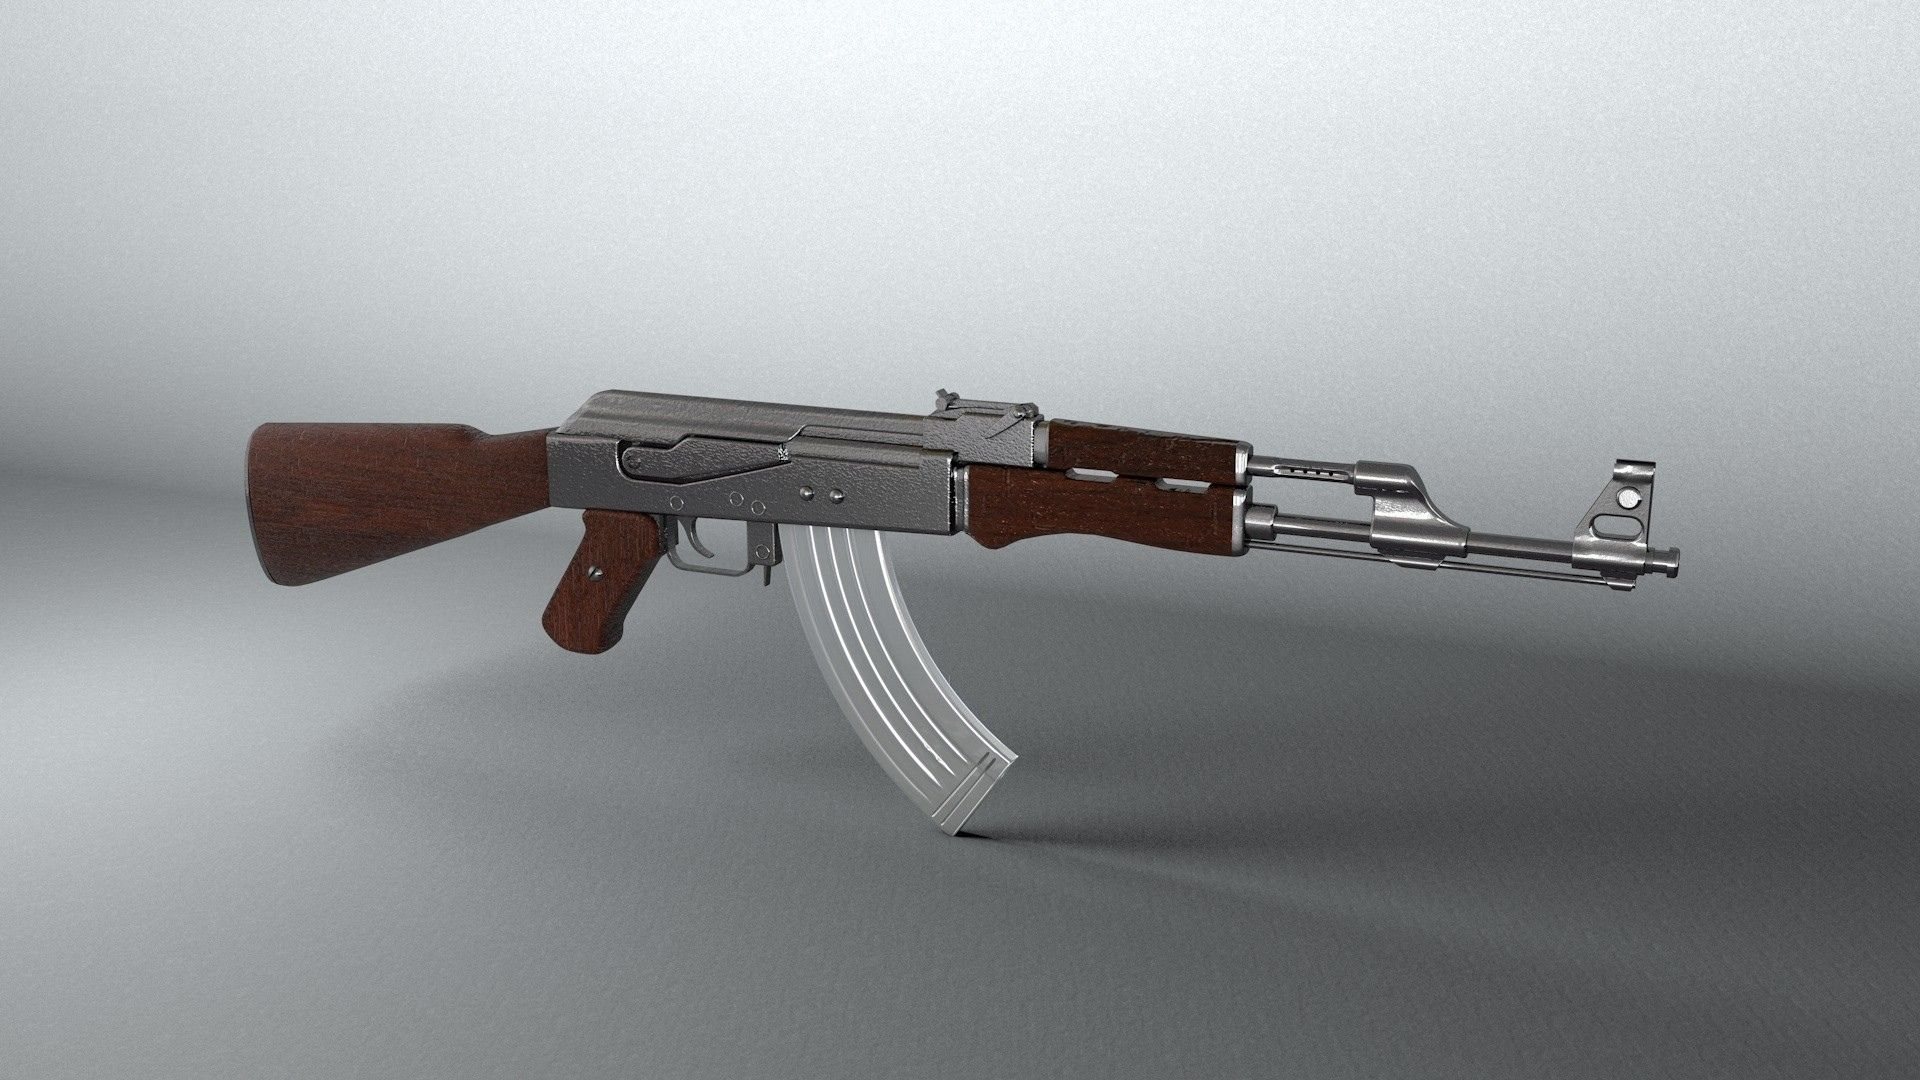 AK 47 HD Images 10 Mobile Wallpaper Full Hd Pictures